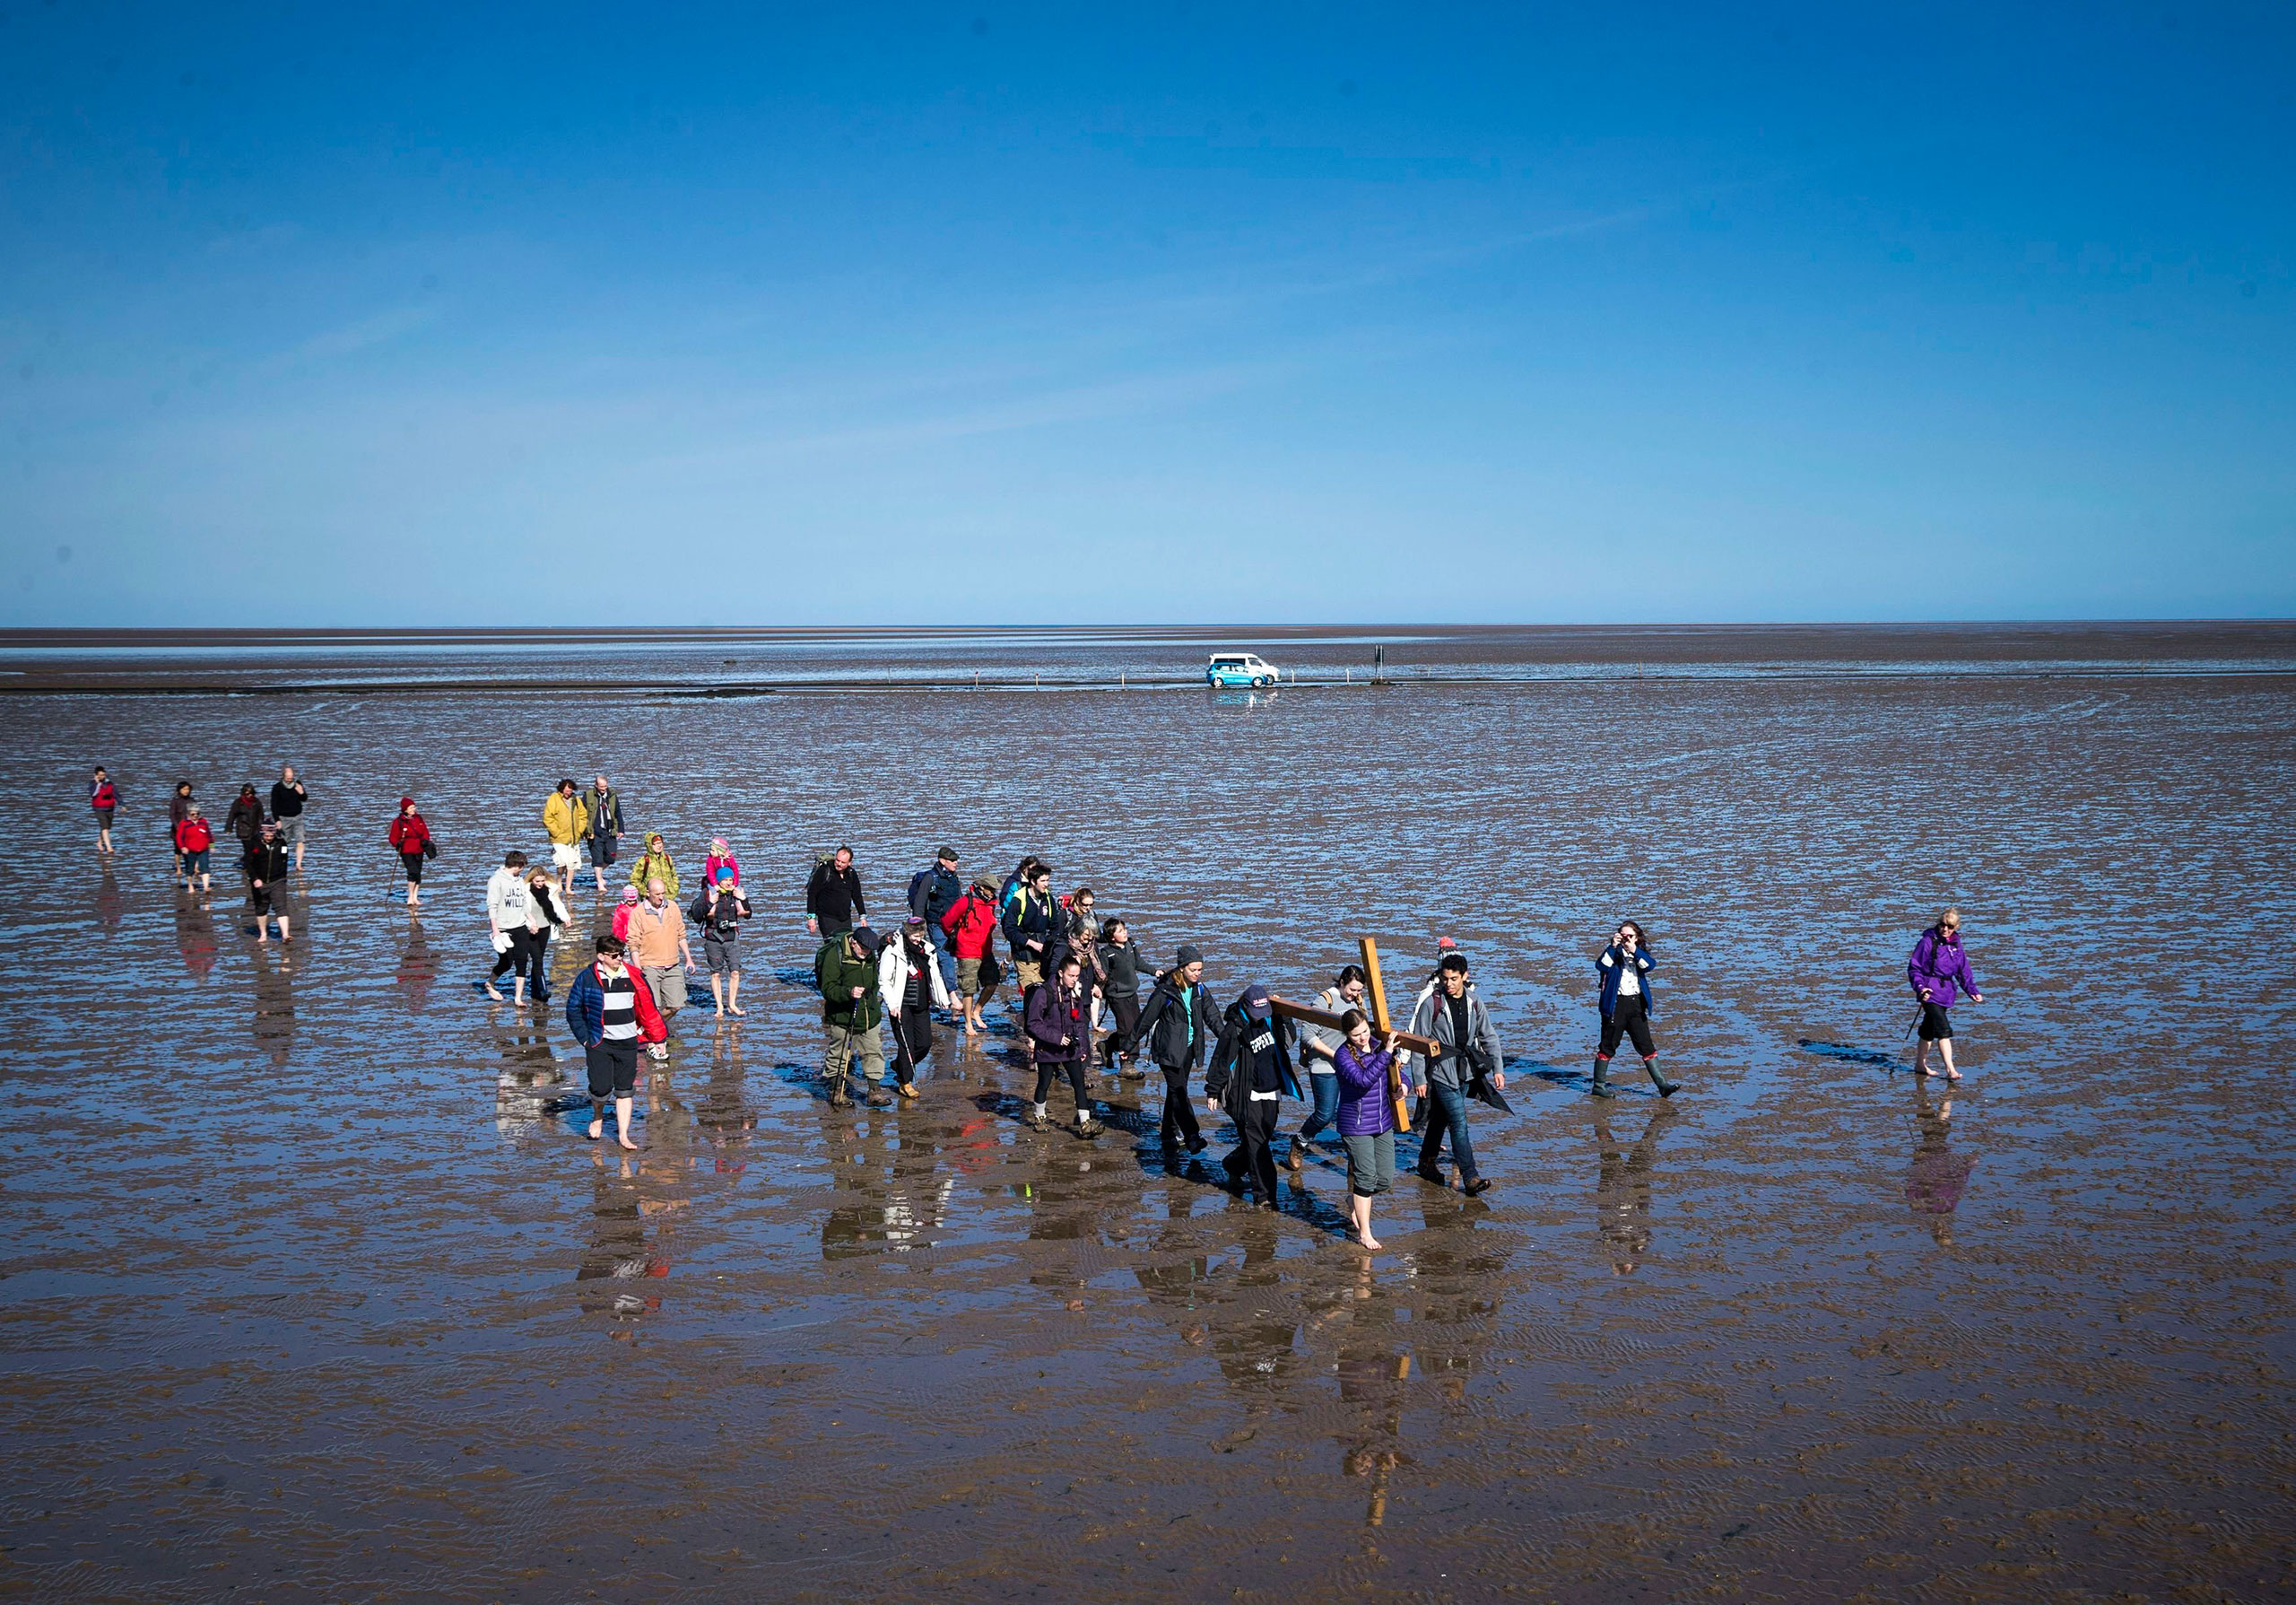 Pilgrims carry a cross on the final leg of the Northern Cross pilgrimage to Holy Island near Berwick-upon-Tweed in Northumberland, England, March 25, 2016.